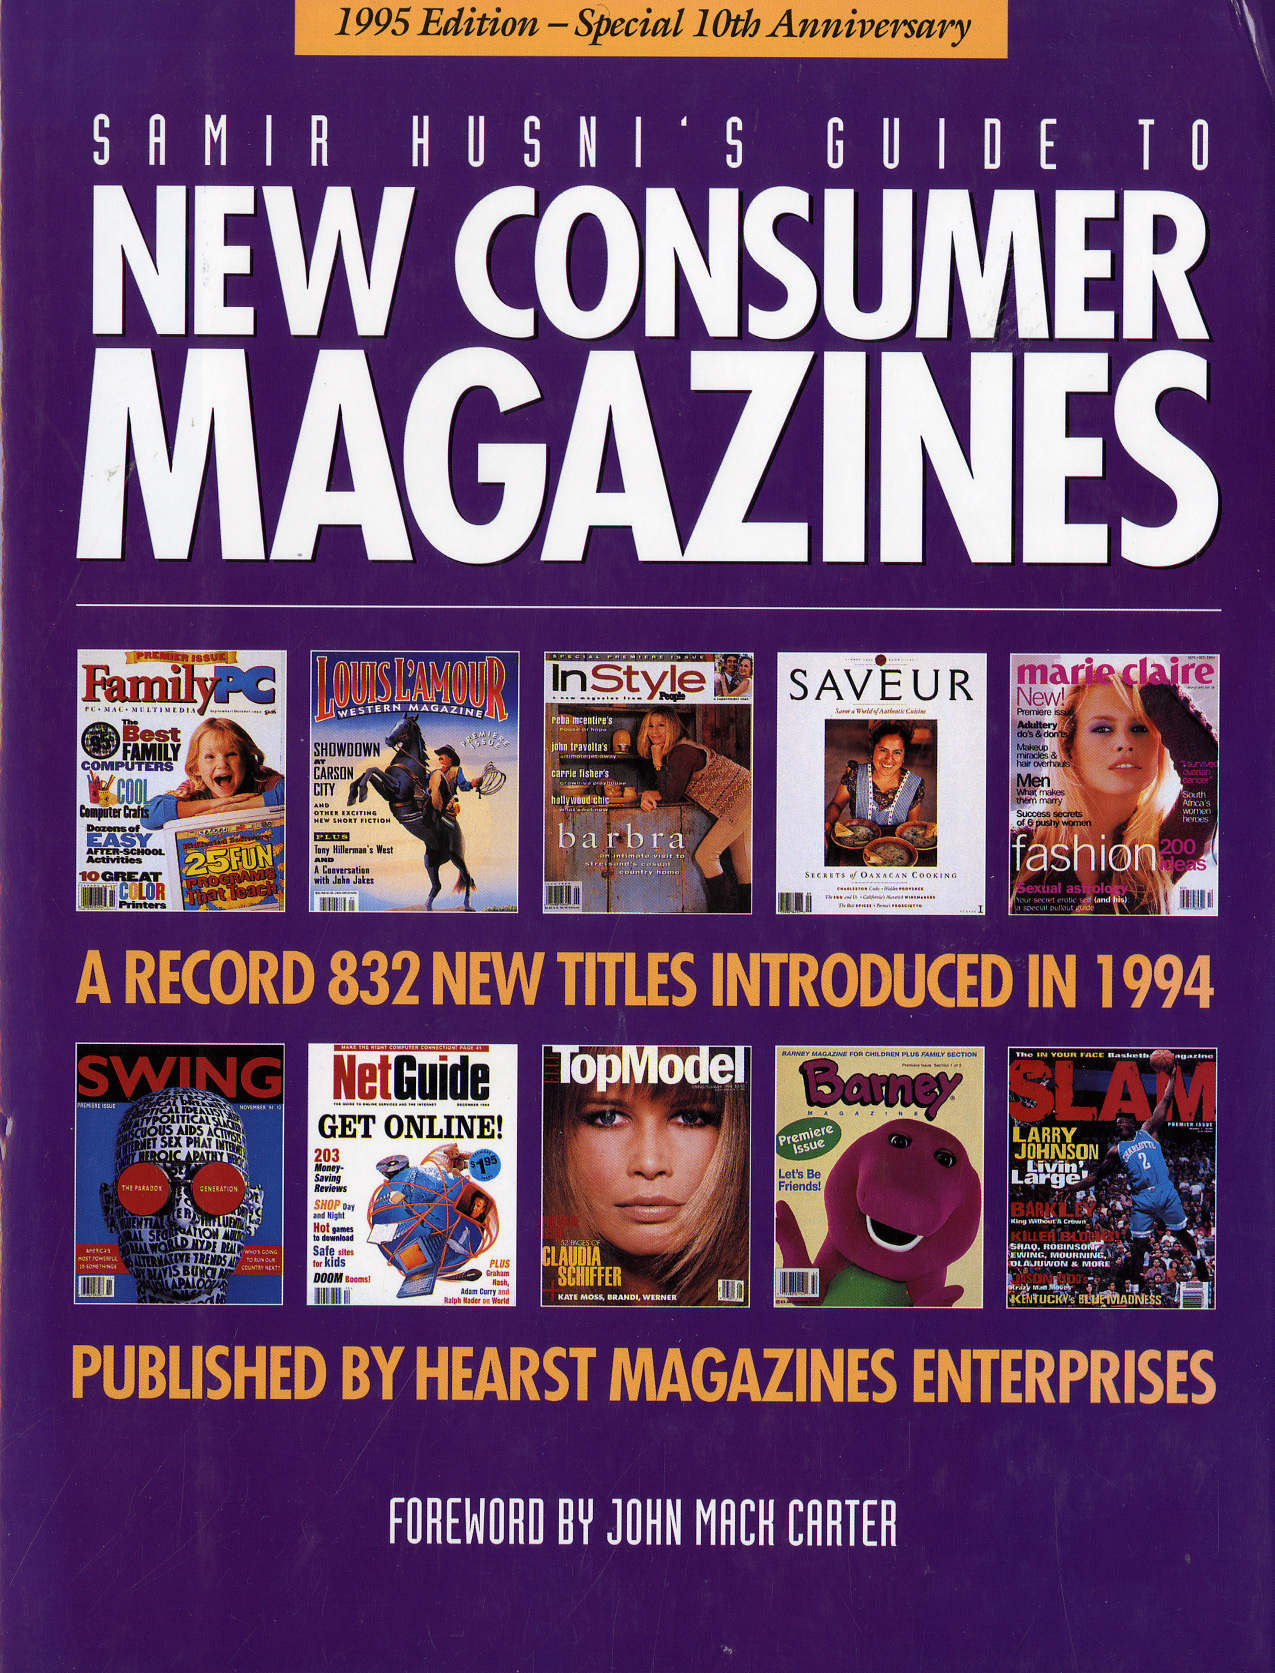 John Mack Carter: The Father Of New Magazines And A Mentor